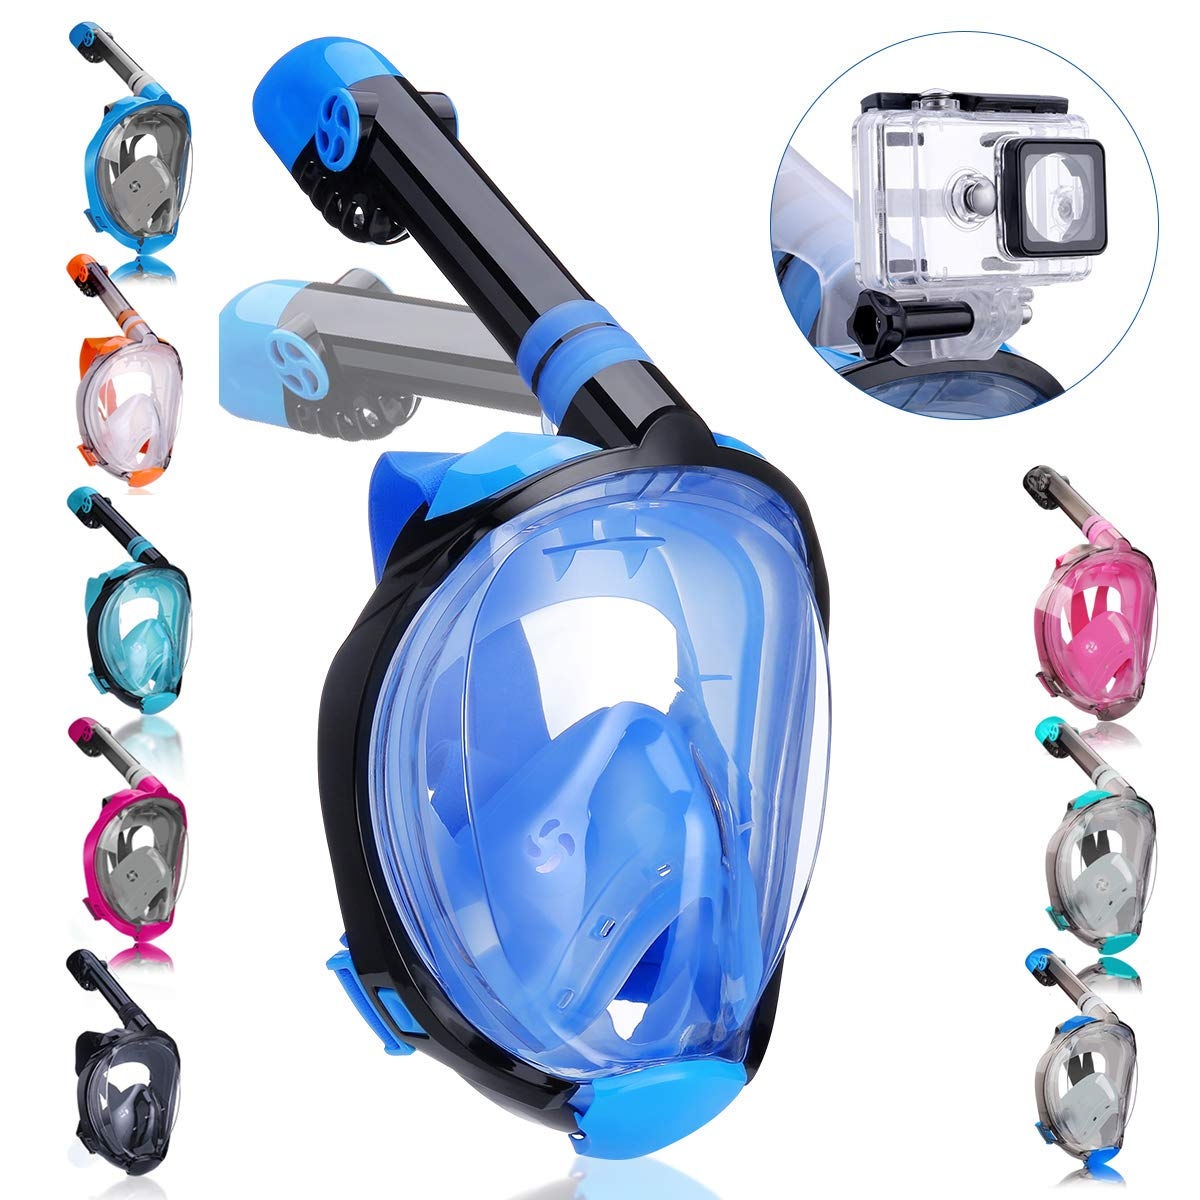 QingSong Full Face Snorkel Mask with Newest Breathing System, Give You A Natural & Safe Snorkeling Experience, Foldable 180 Degree Panoramic View Anti-Fog Anti-Leak Snorkel Set for Adults & Kids by QingSong